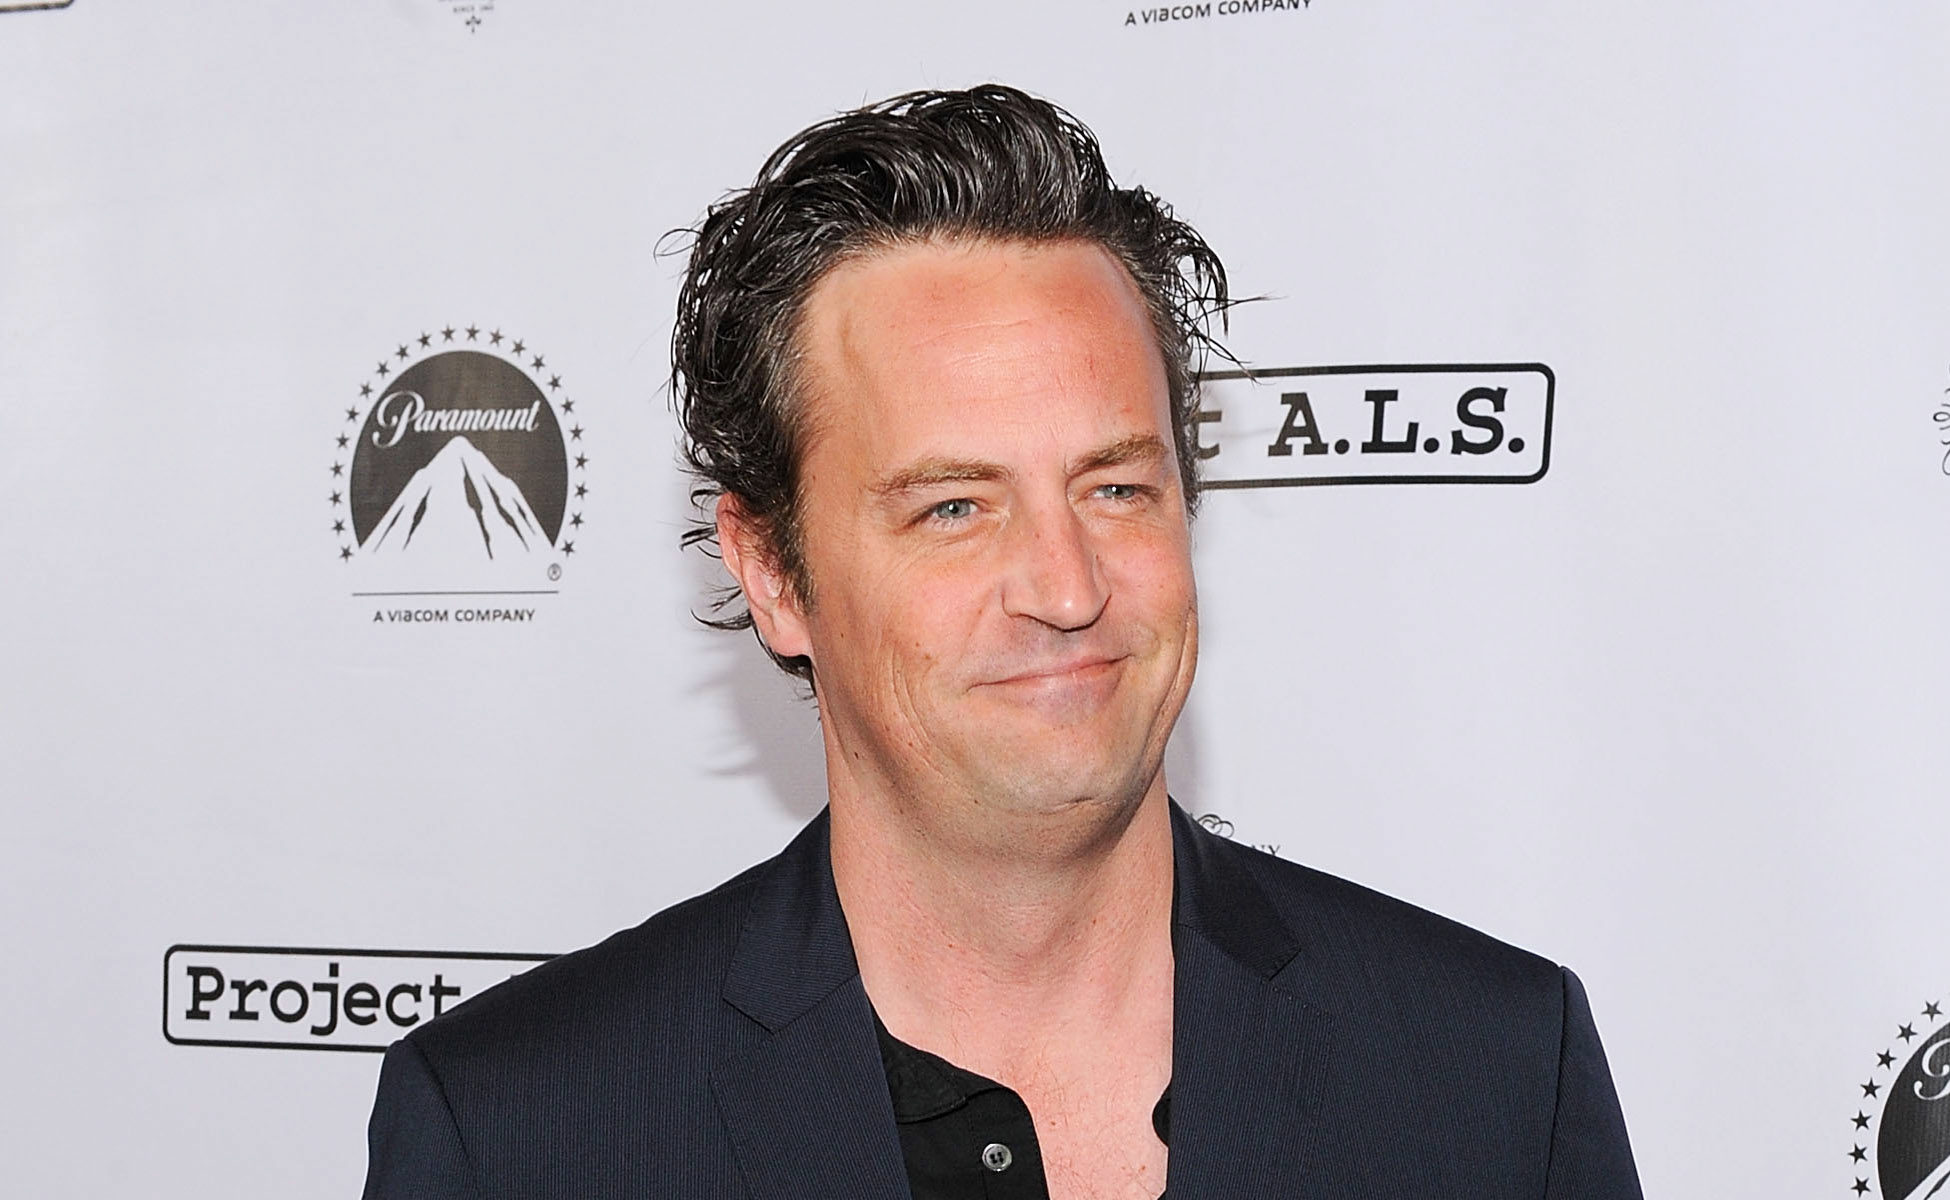 Friends: Matthew Perry Shut Down A Problematic Gay